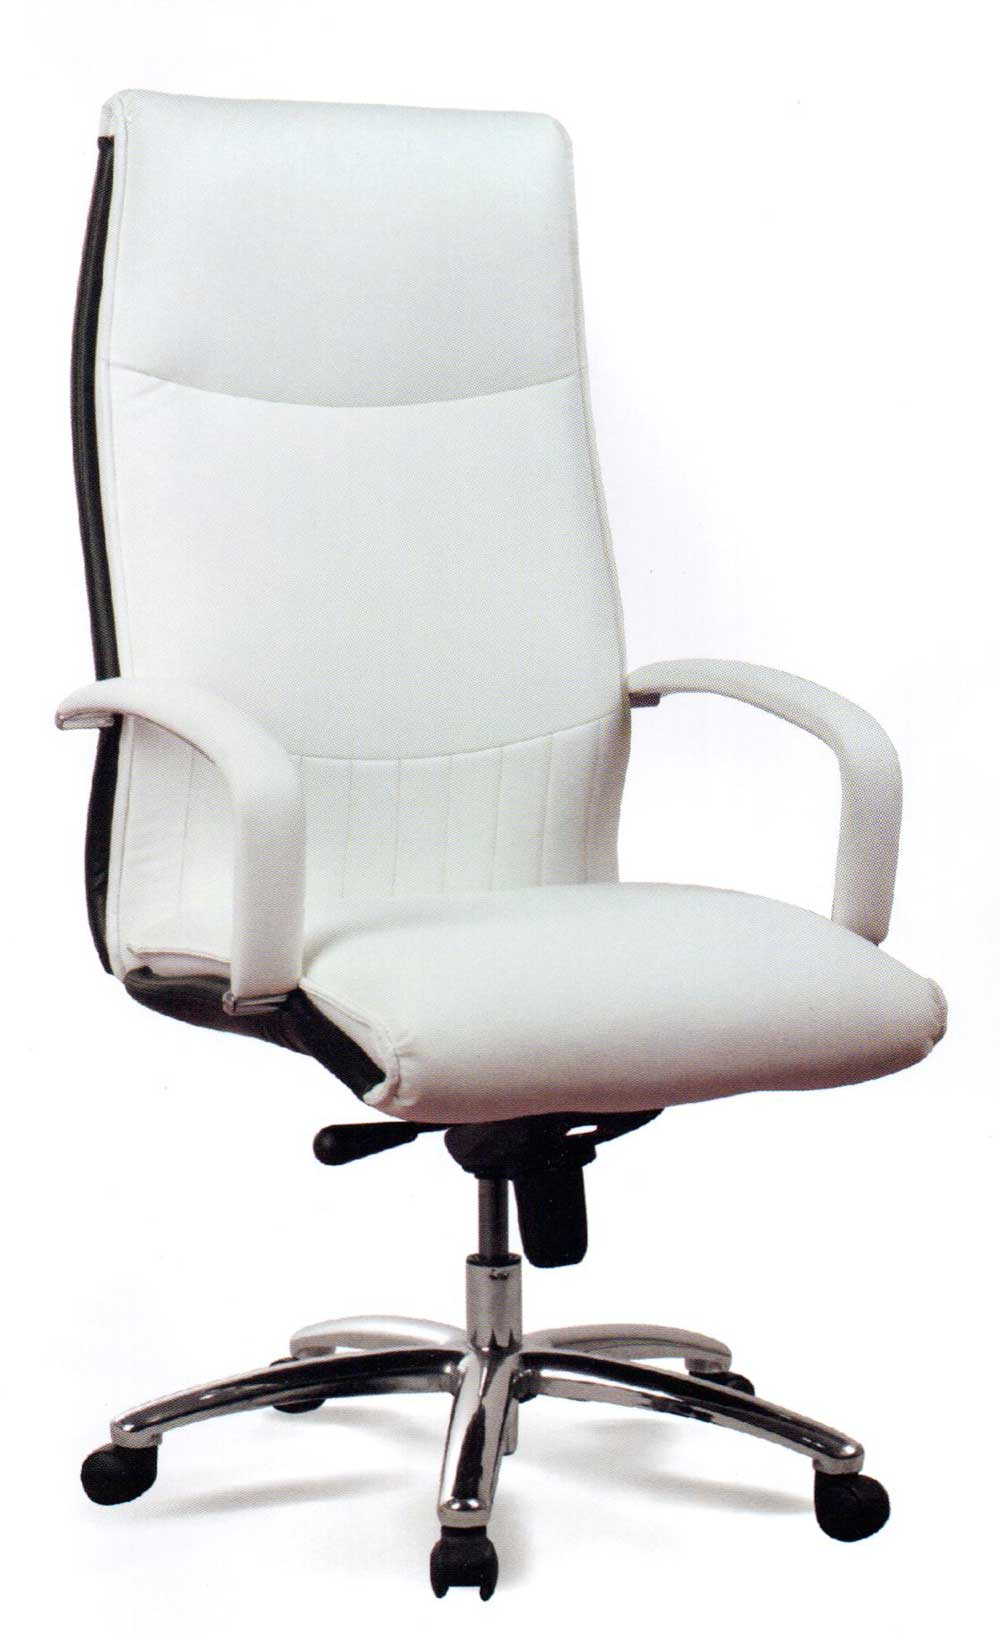 Quality Office Chairs For Any Home Office